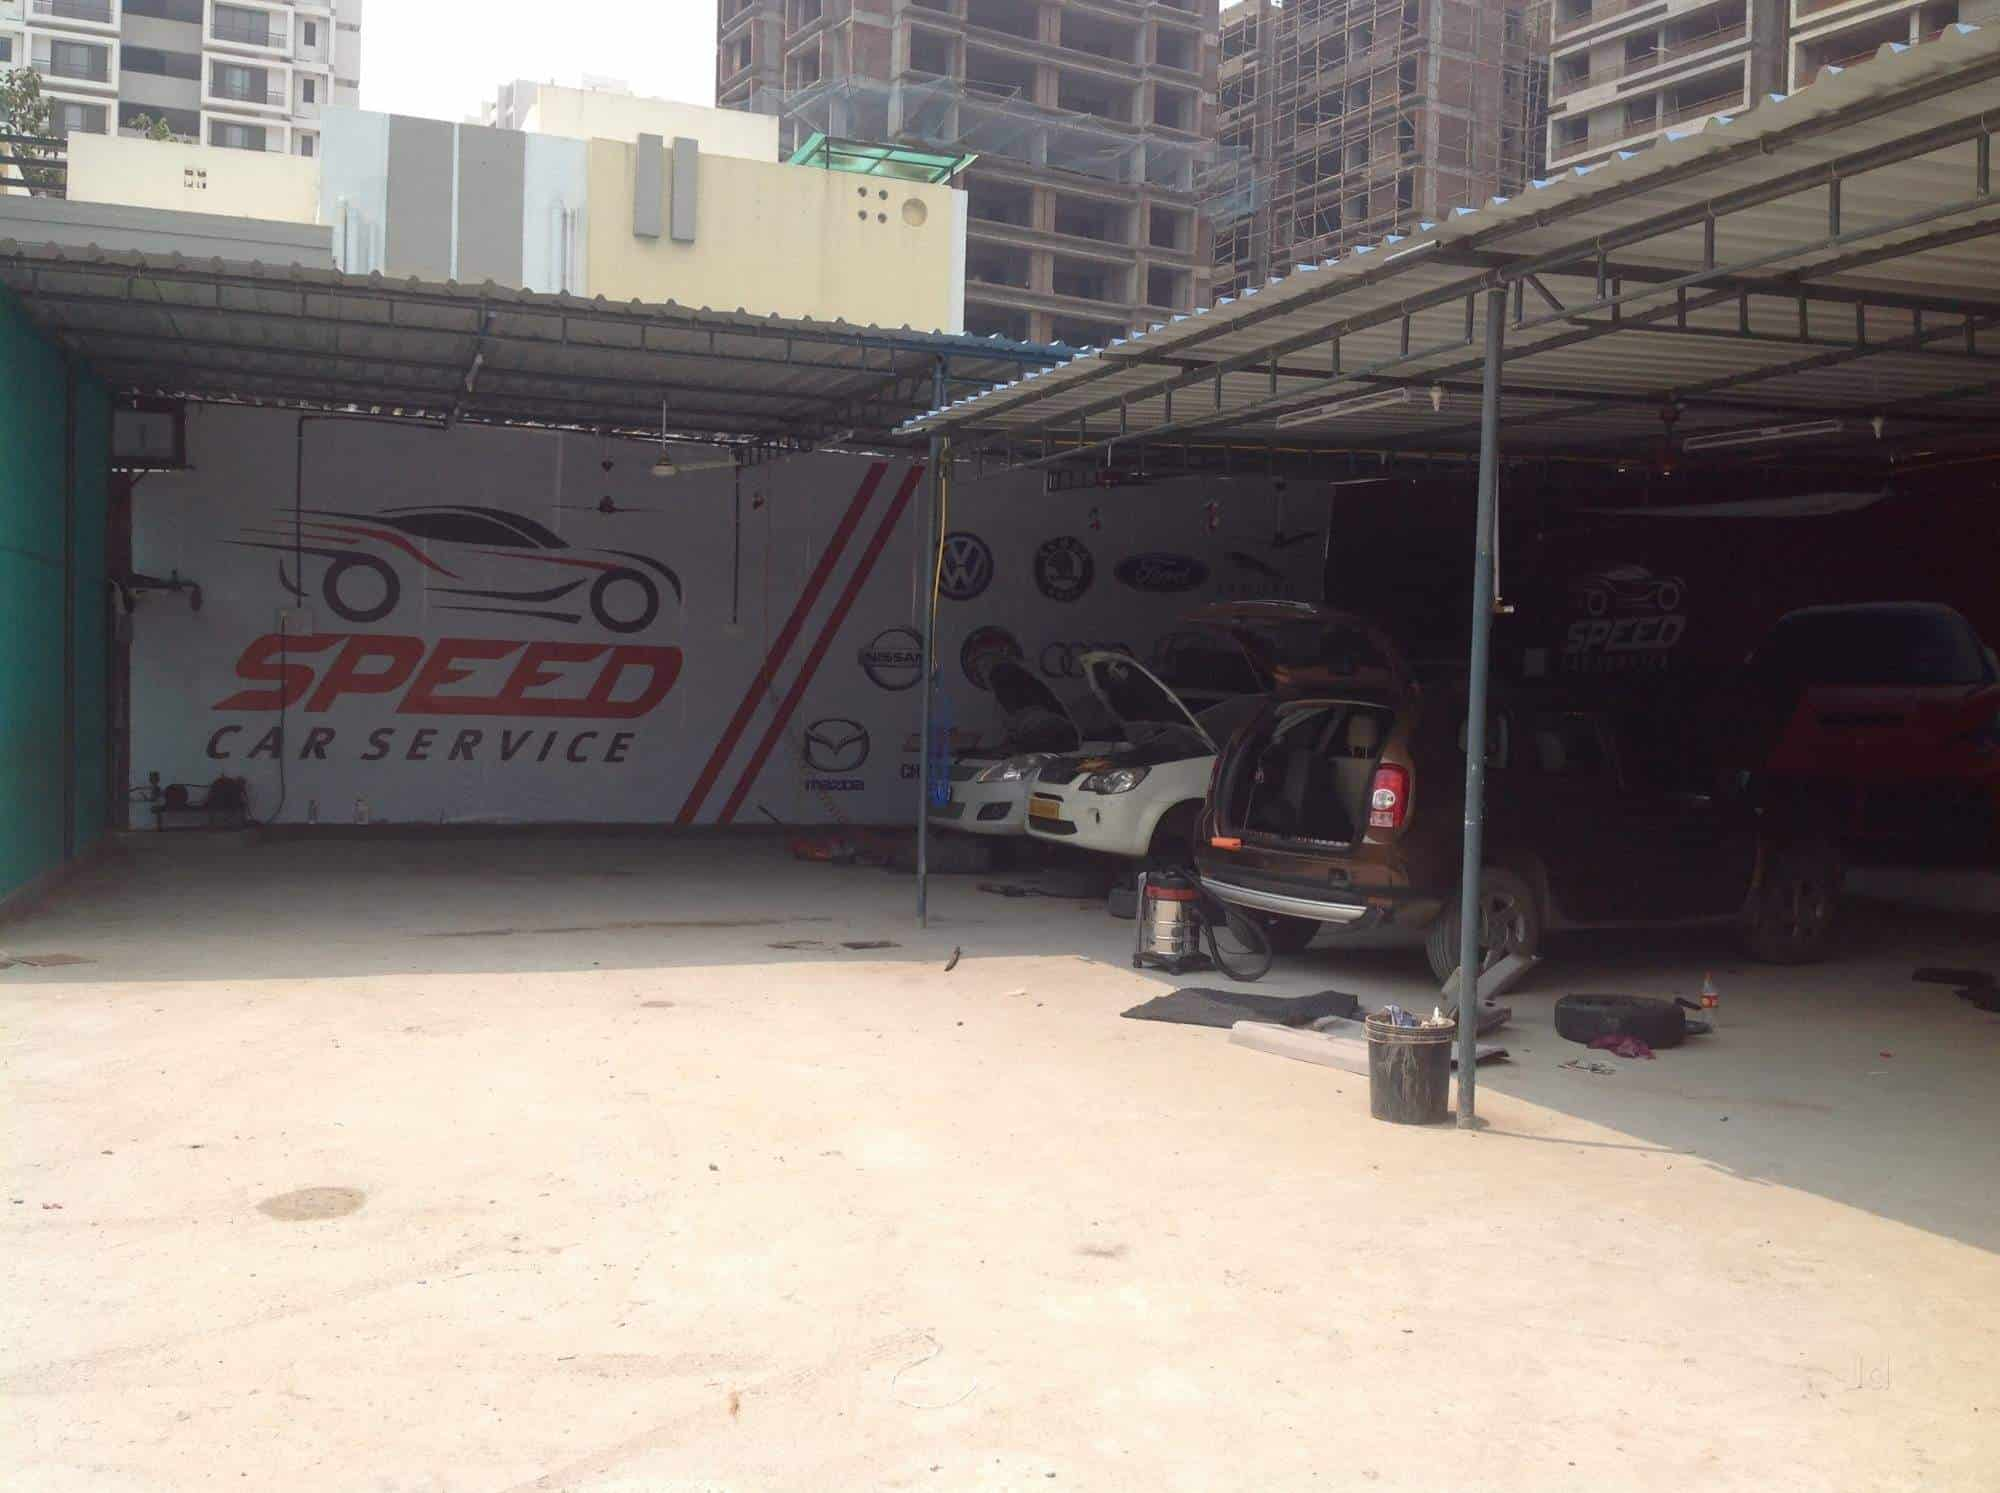 Speed Car Service Photos Bopal Ahmedabad Pictures Images